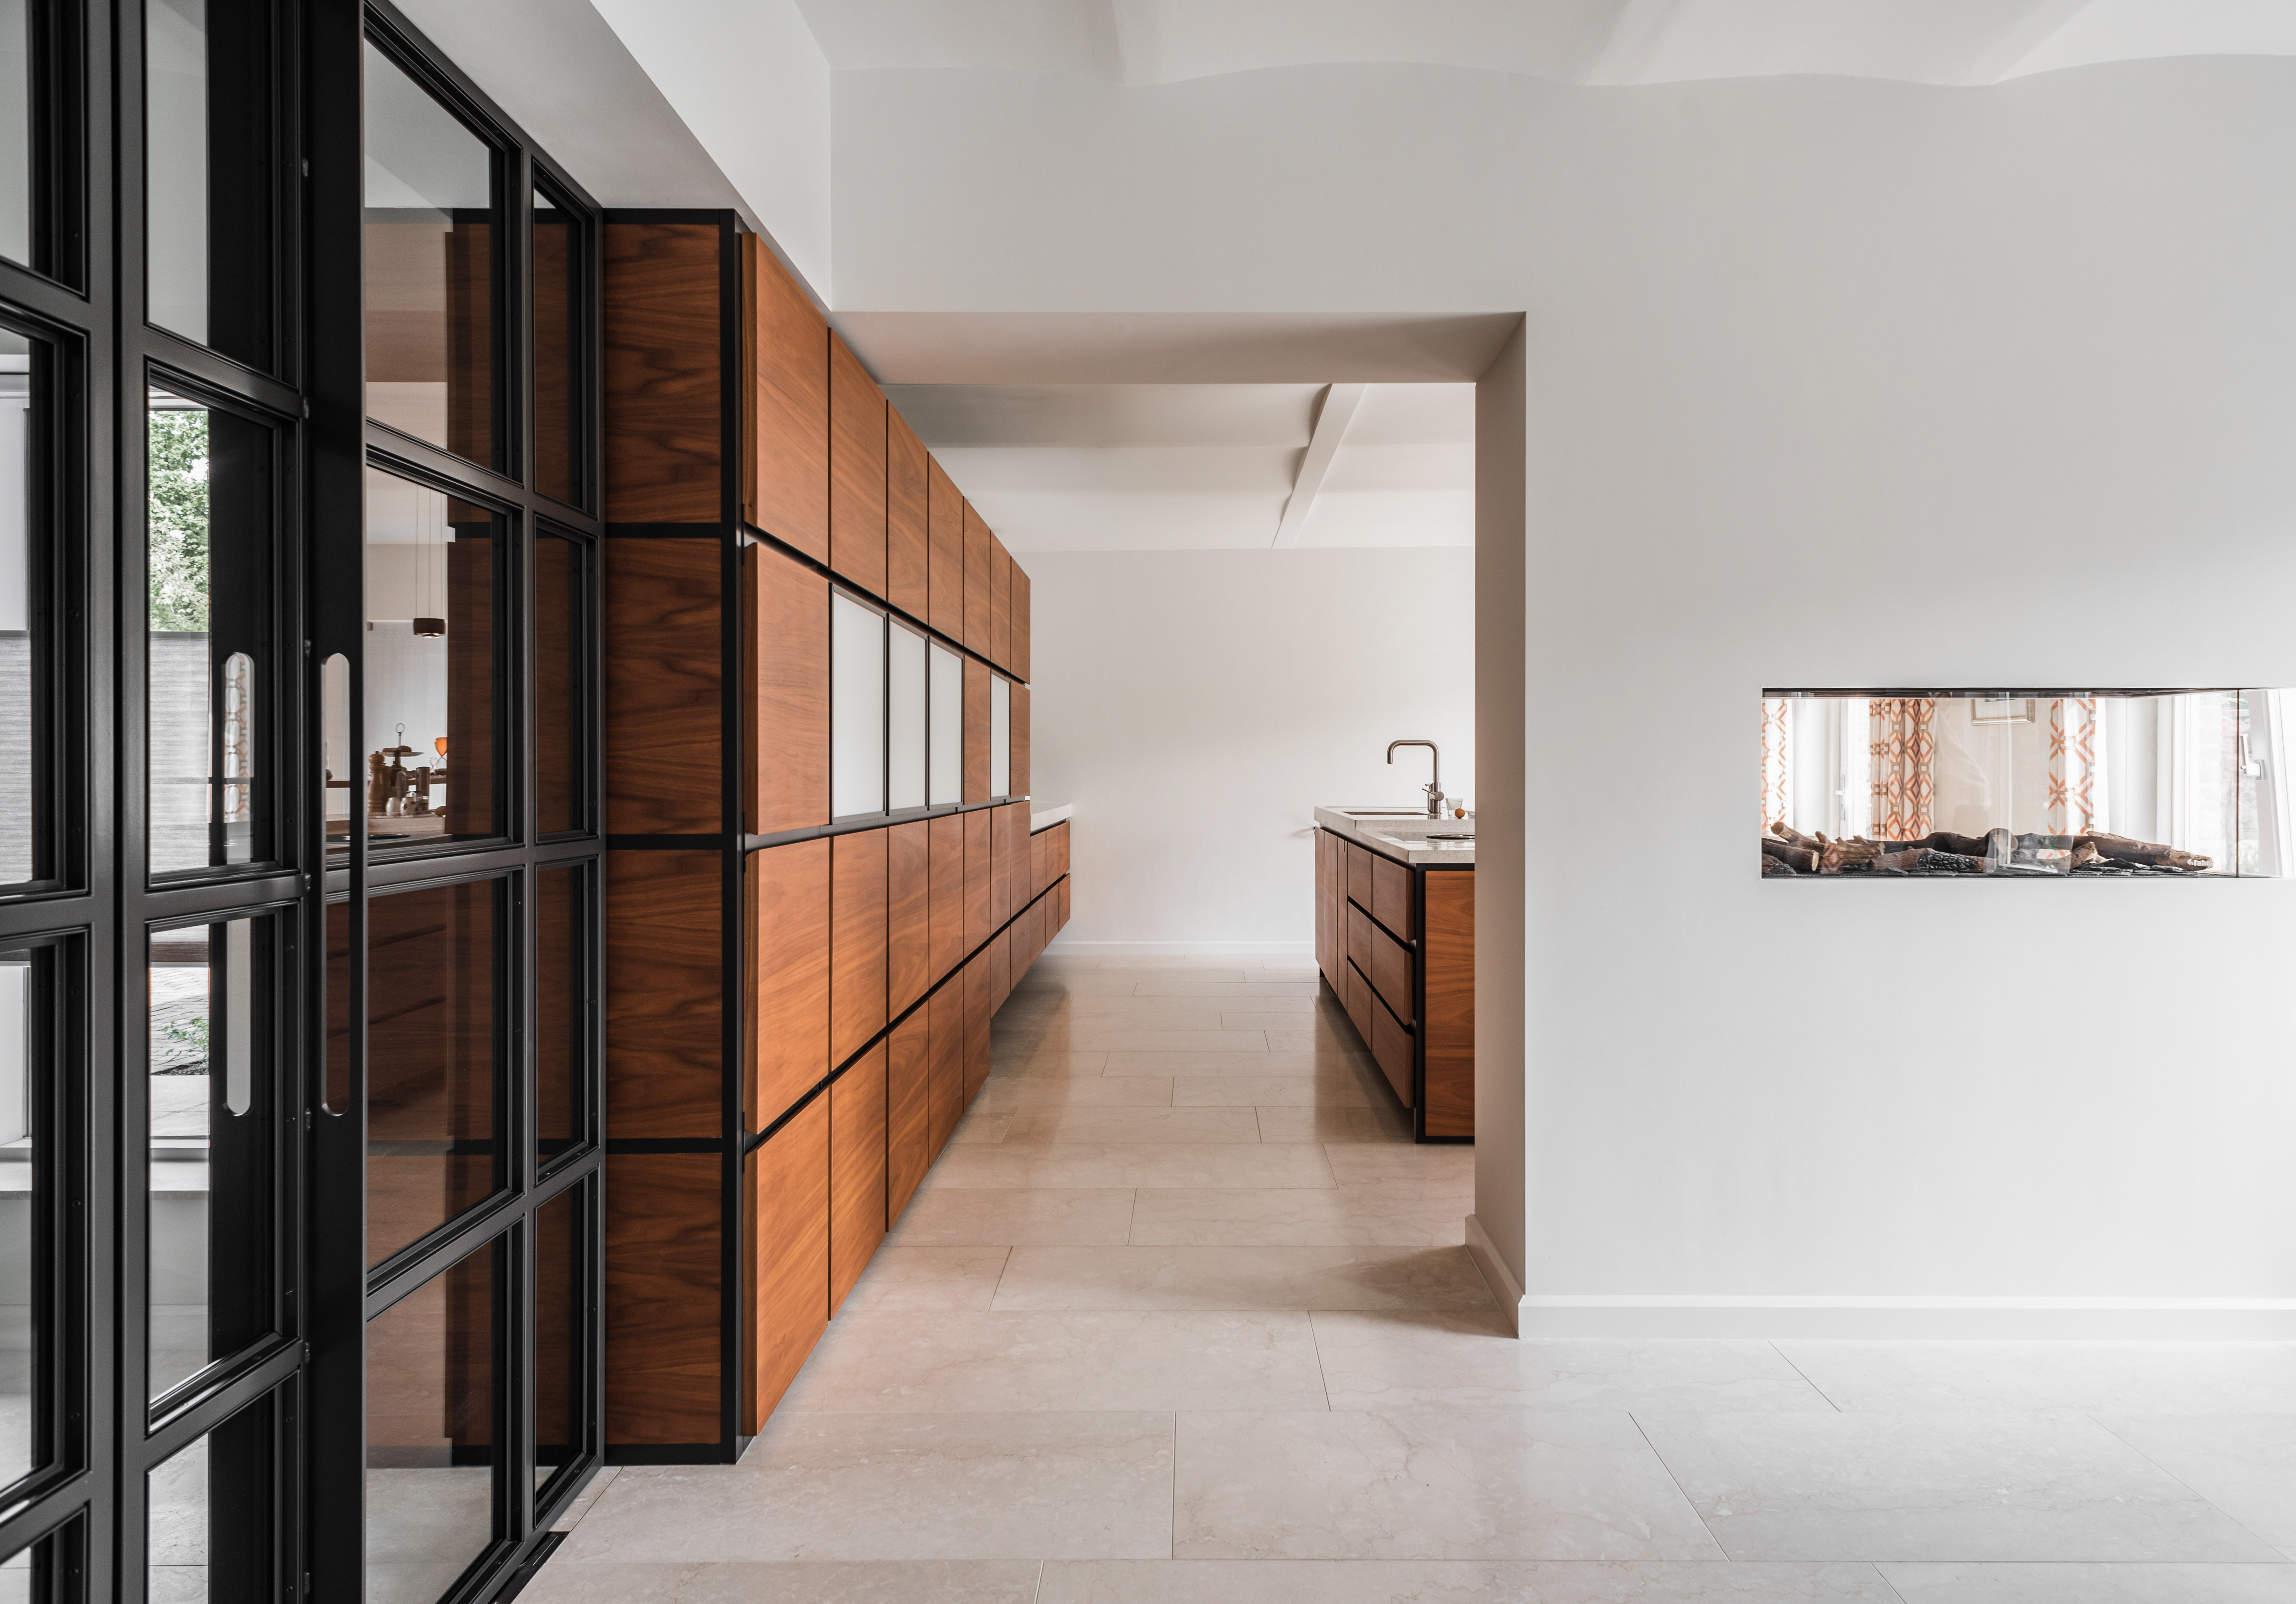 Kitchen and fireplace divider